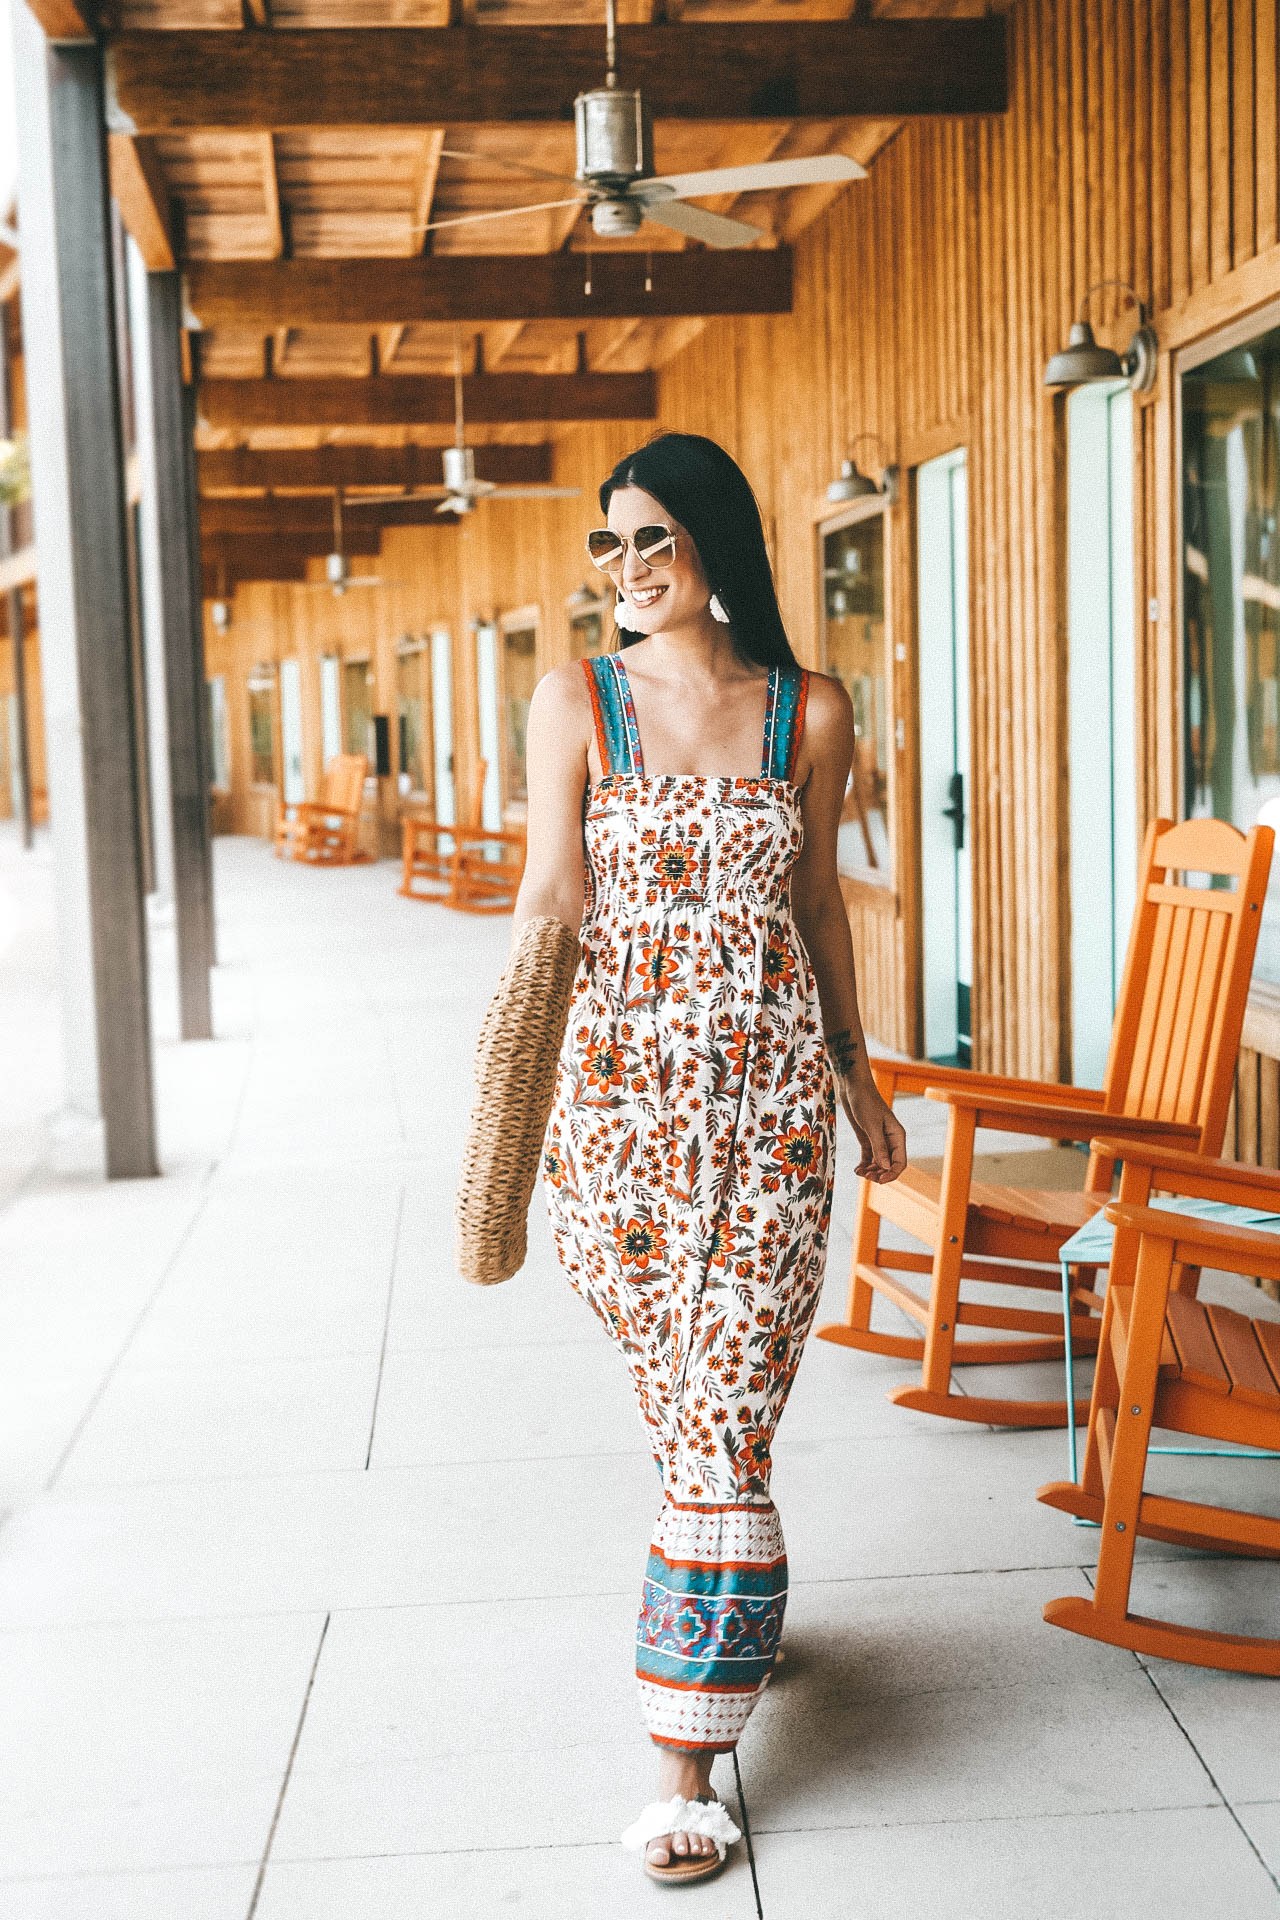 DTKAustin shares her favorite women's clothing from the new Joie at the Domain NORTHSIDE in Austin. Get an exclusive 20% off in Austin with code JOIENORTHSIDE. - Joie at Domain NORTHSIDE in Austin + Exclusive Discount} featured by popular Austin fashion blogger, Dressed to Kill